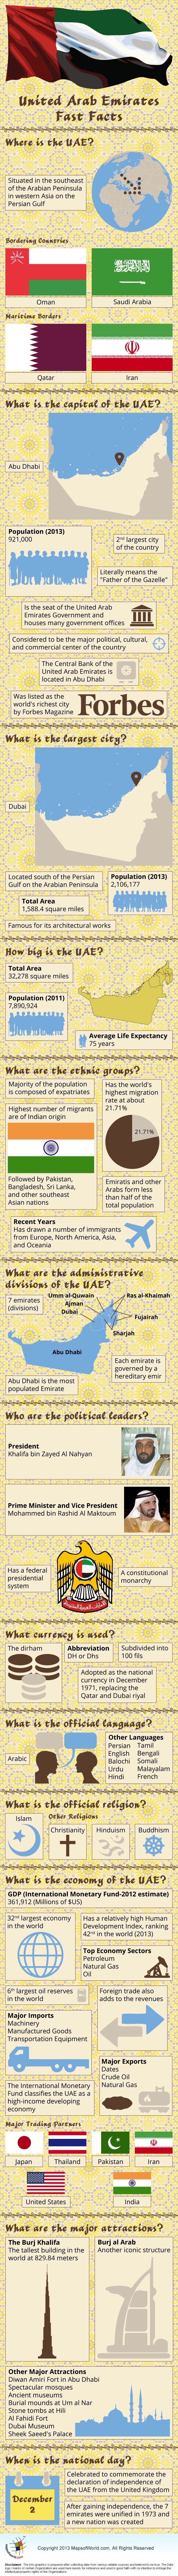 Here's an infographic showing fast facts about UAE #facts #Asia